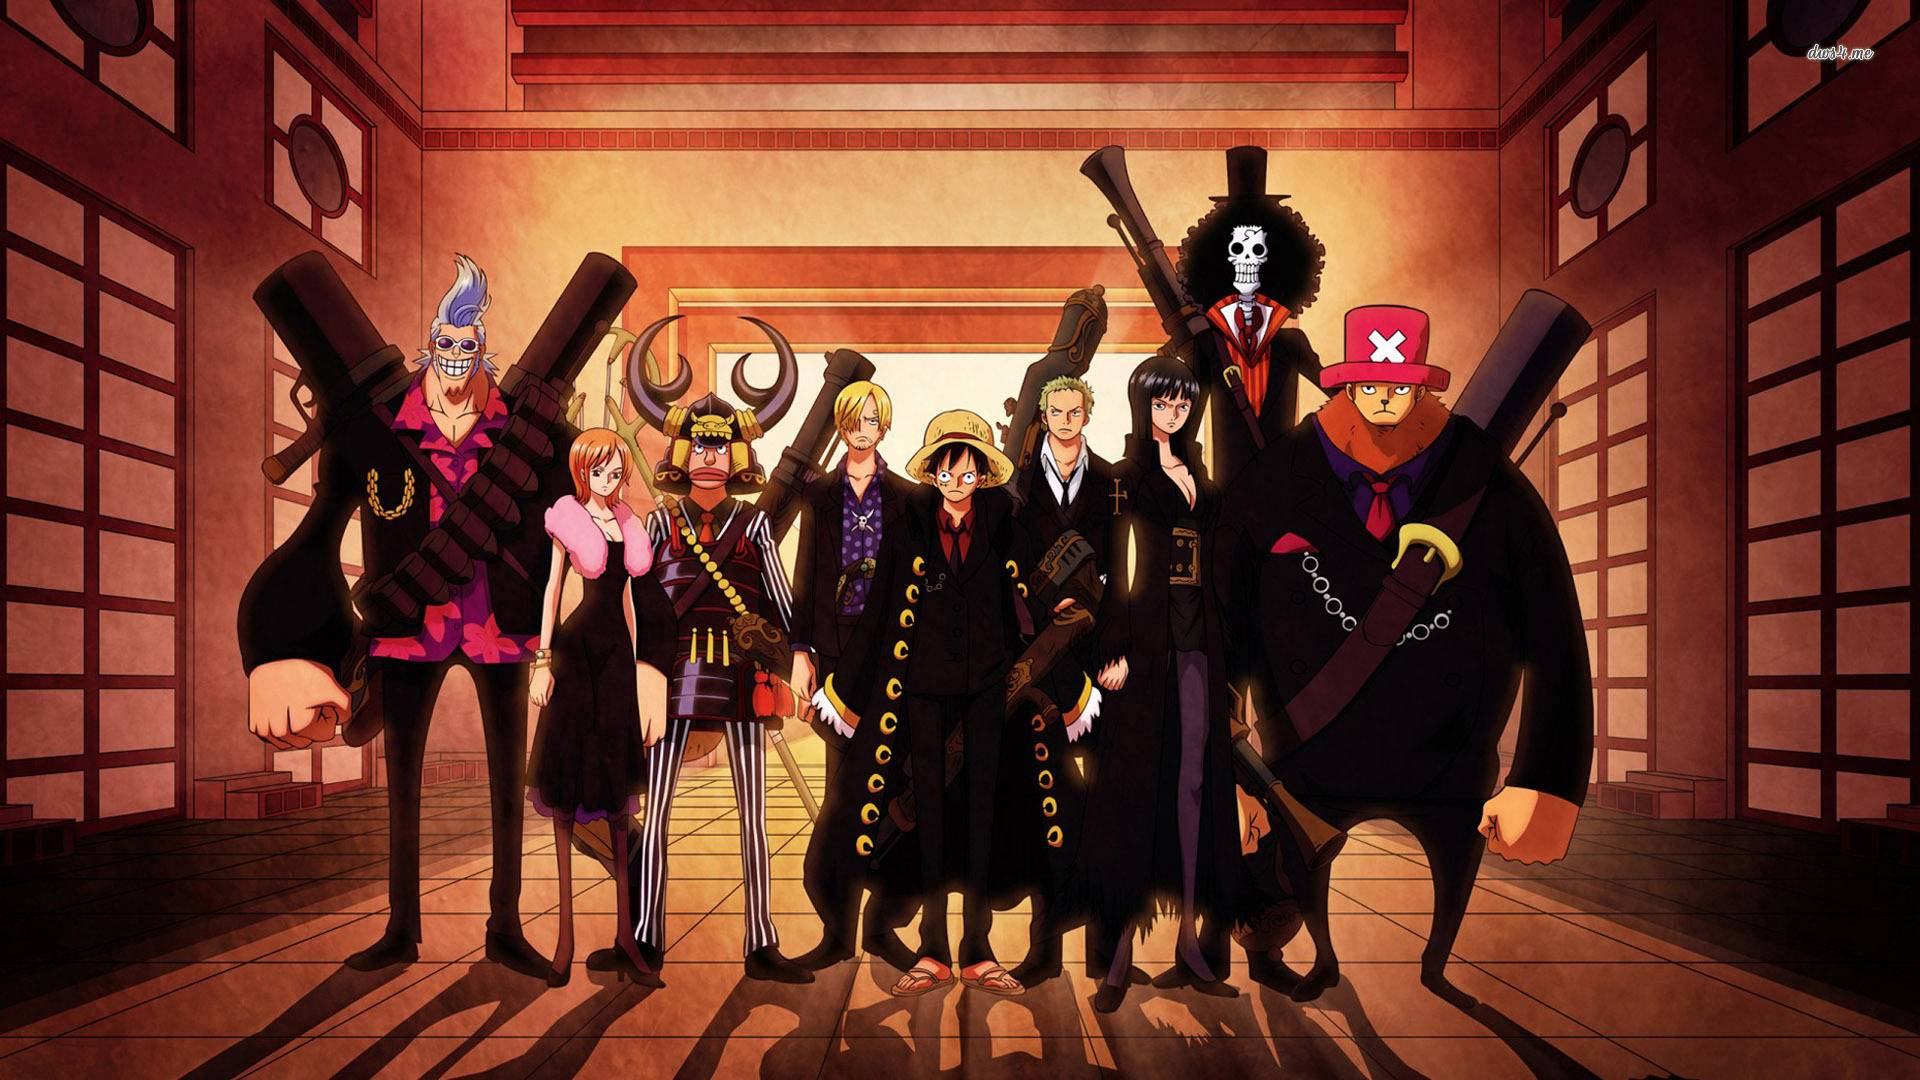 One Piece Crew Wallpapers 1920x1080